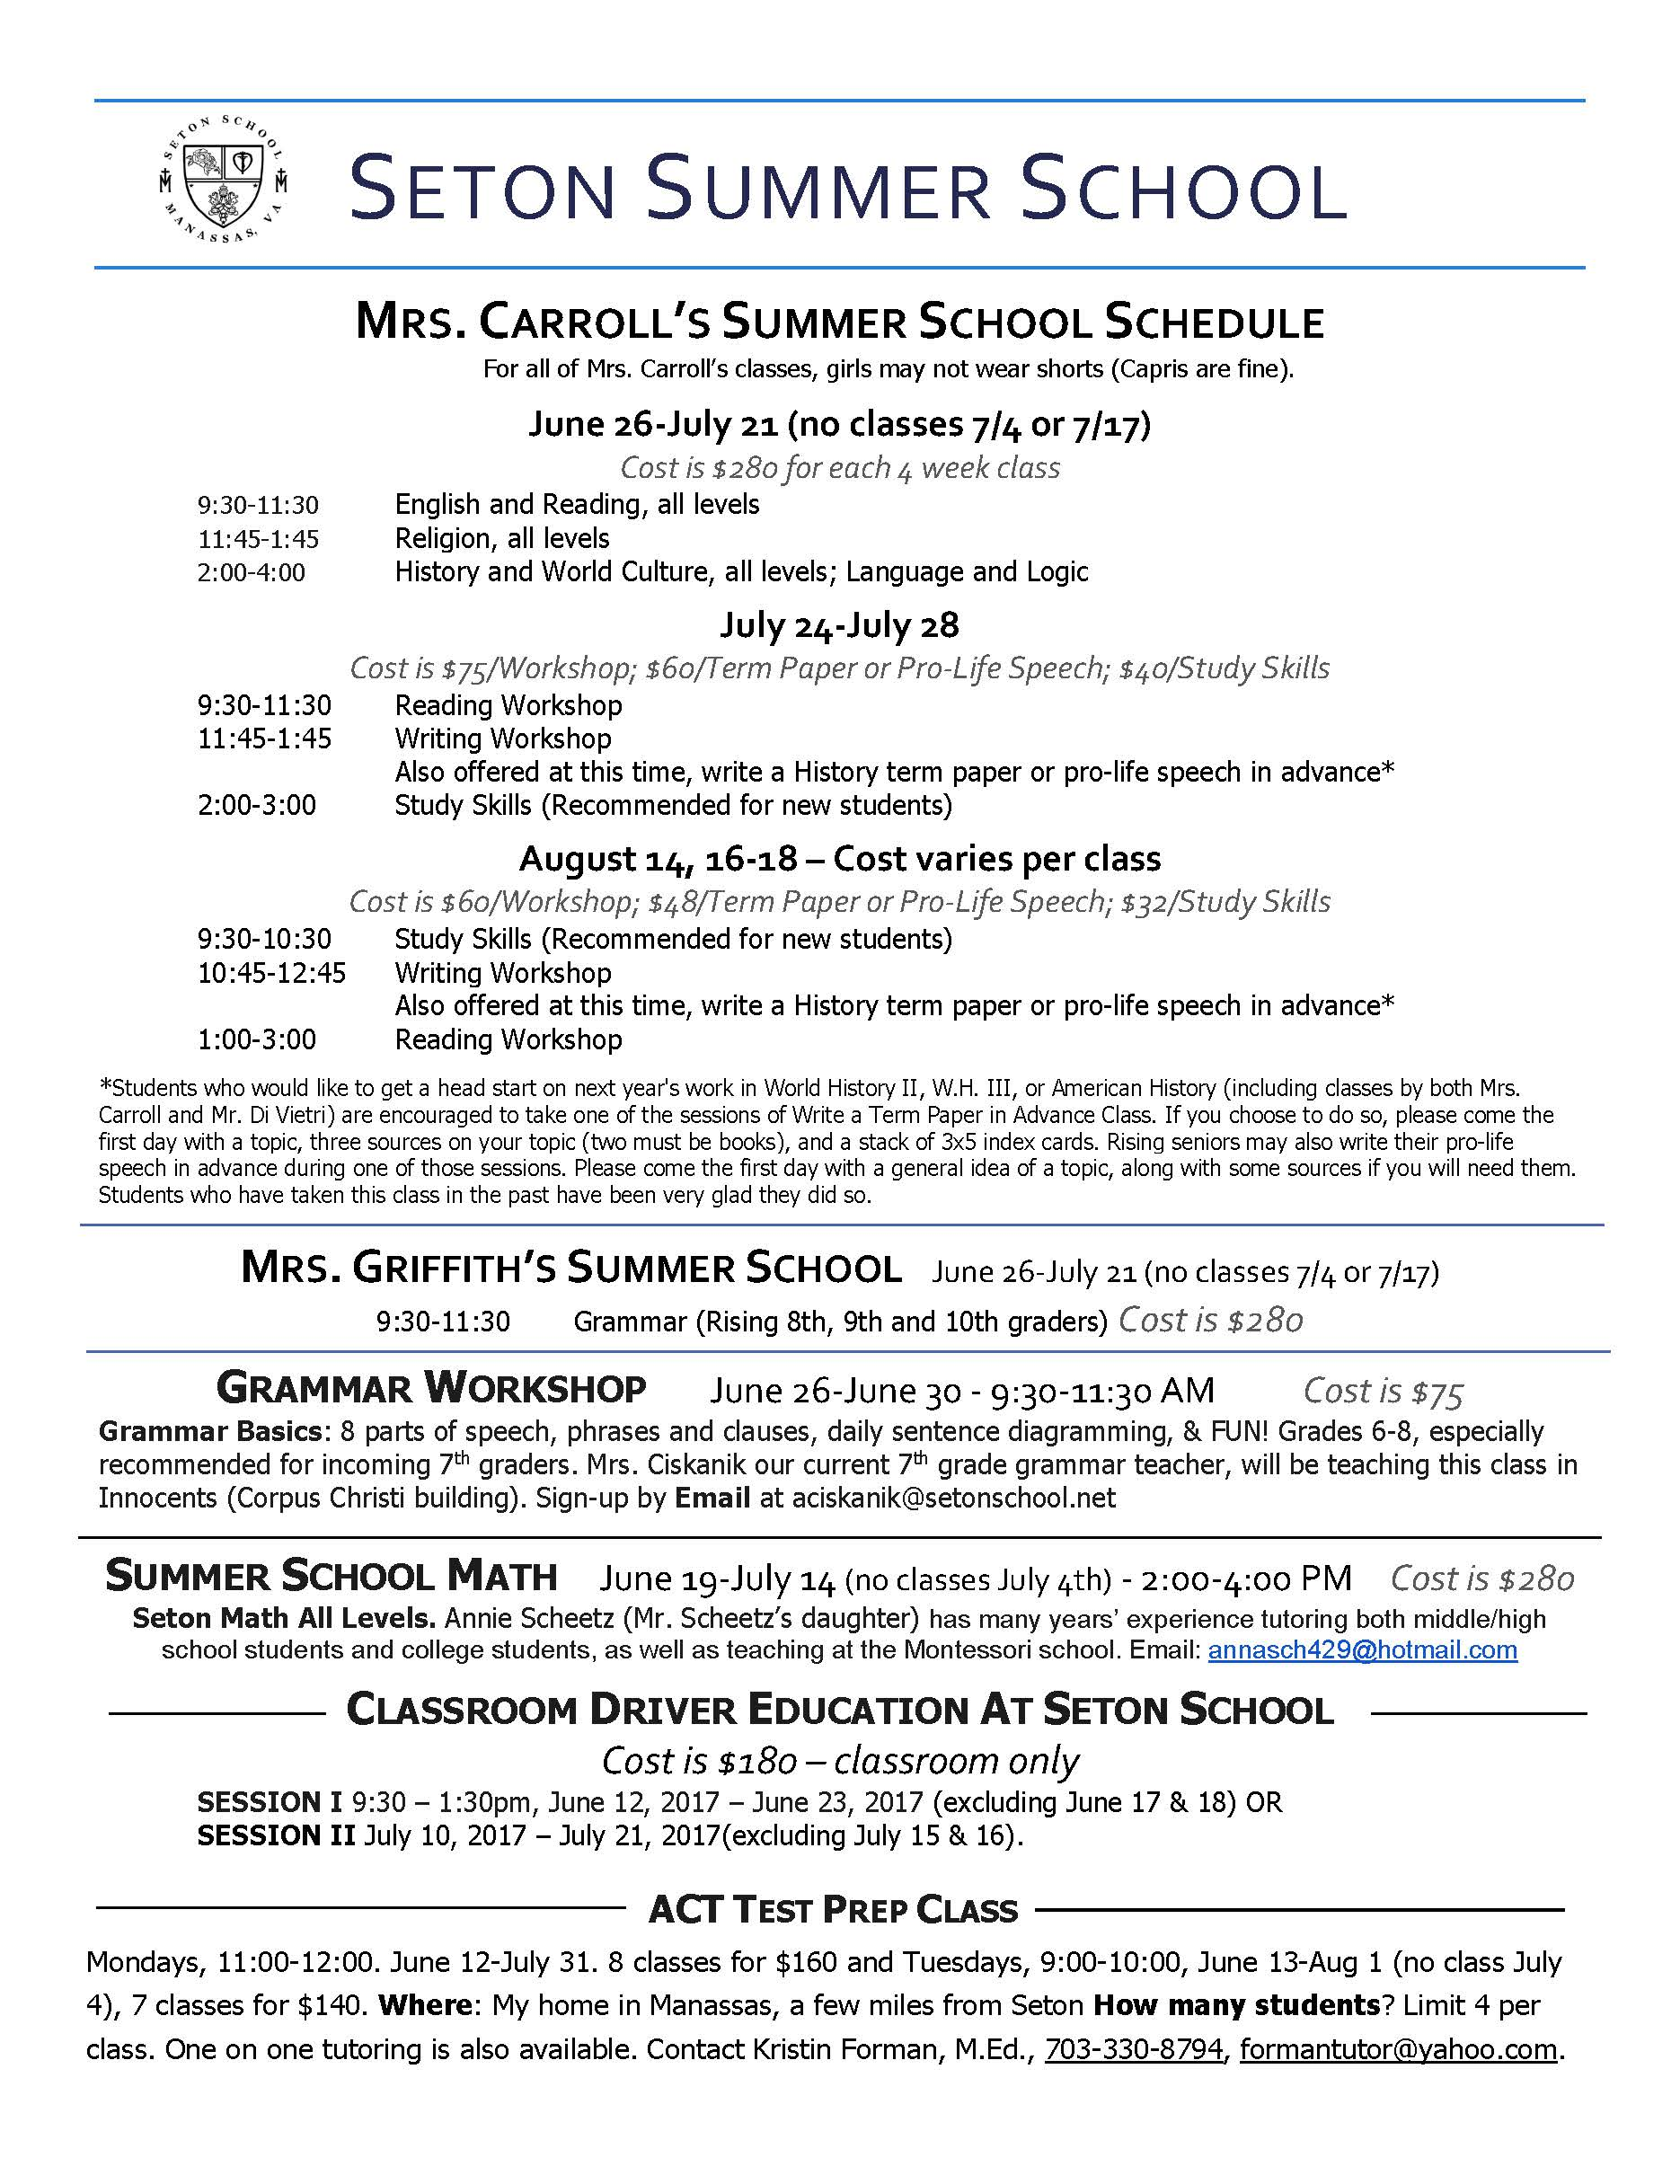 Summer Academic Schedule Summer Activities Schedule